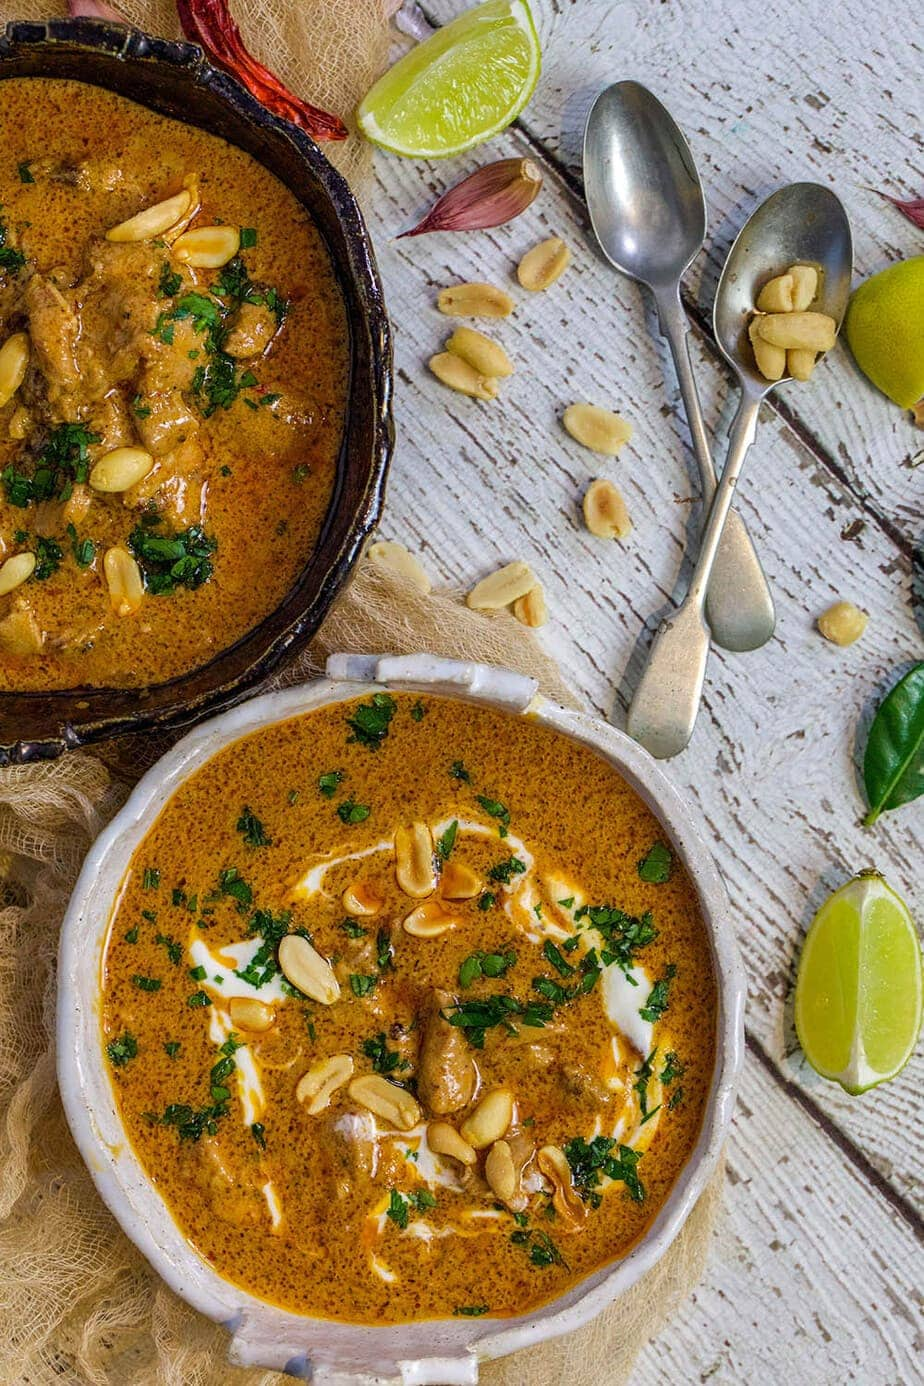 Chicken curry in a white bowl